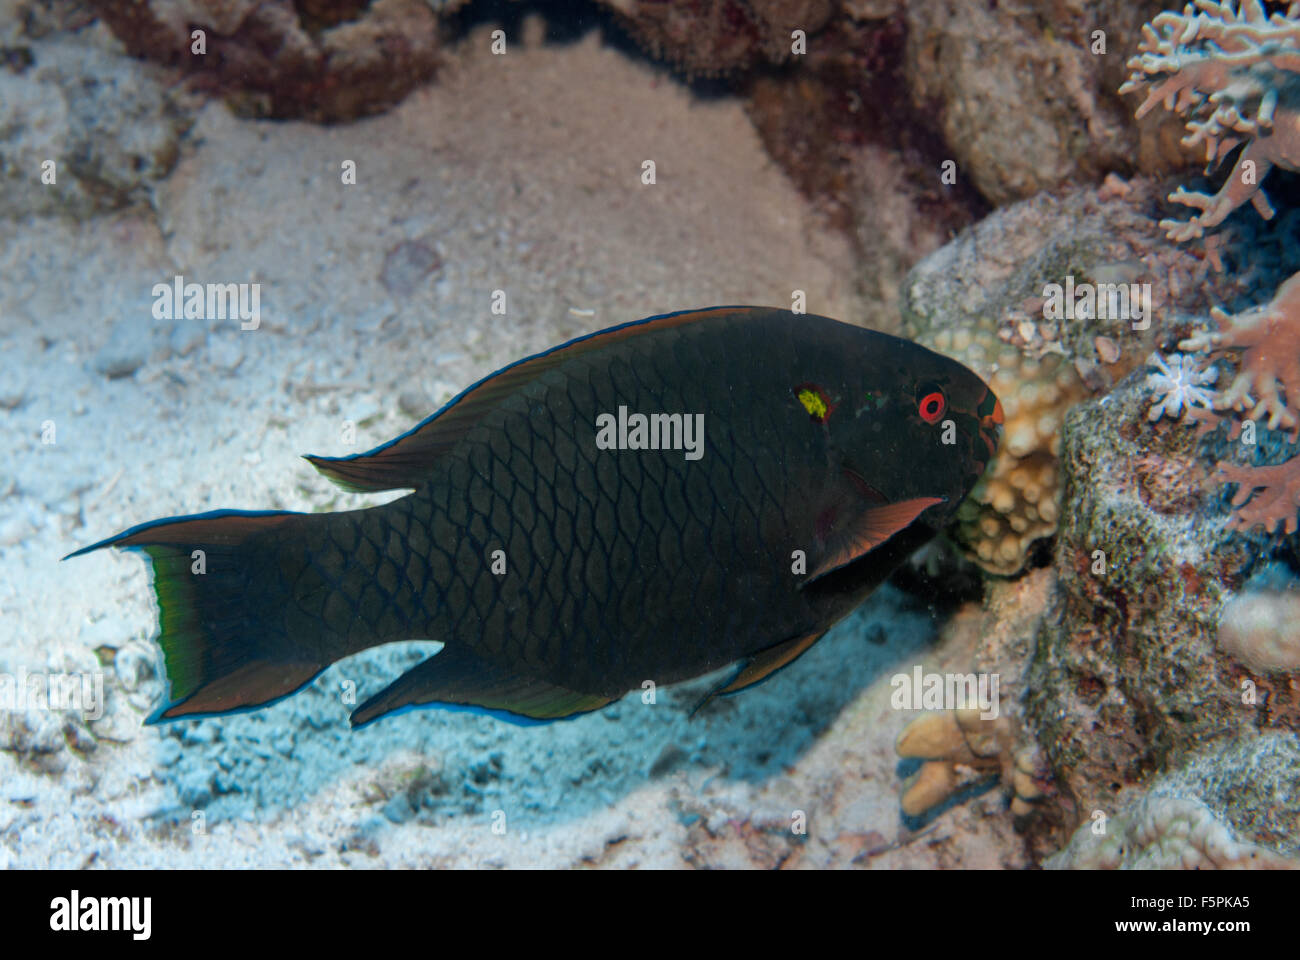 Swarty parrotfish, Scarus niger, Scaridae, Sharm el Sheikh, Red Sea, Egypt - Stock Image